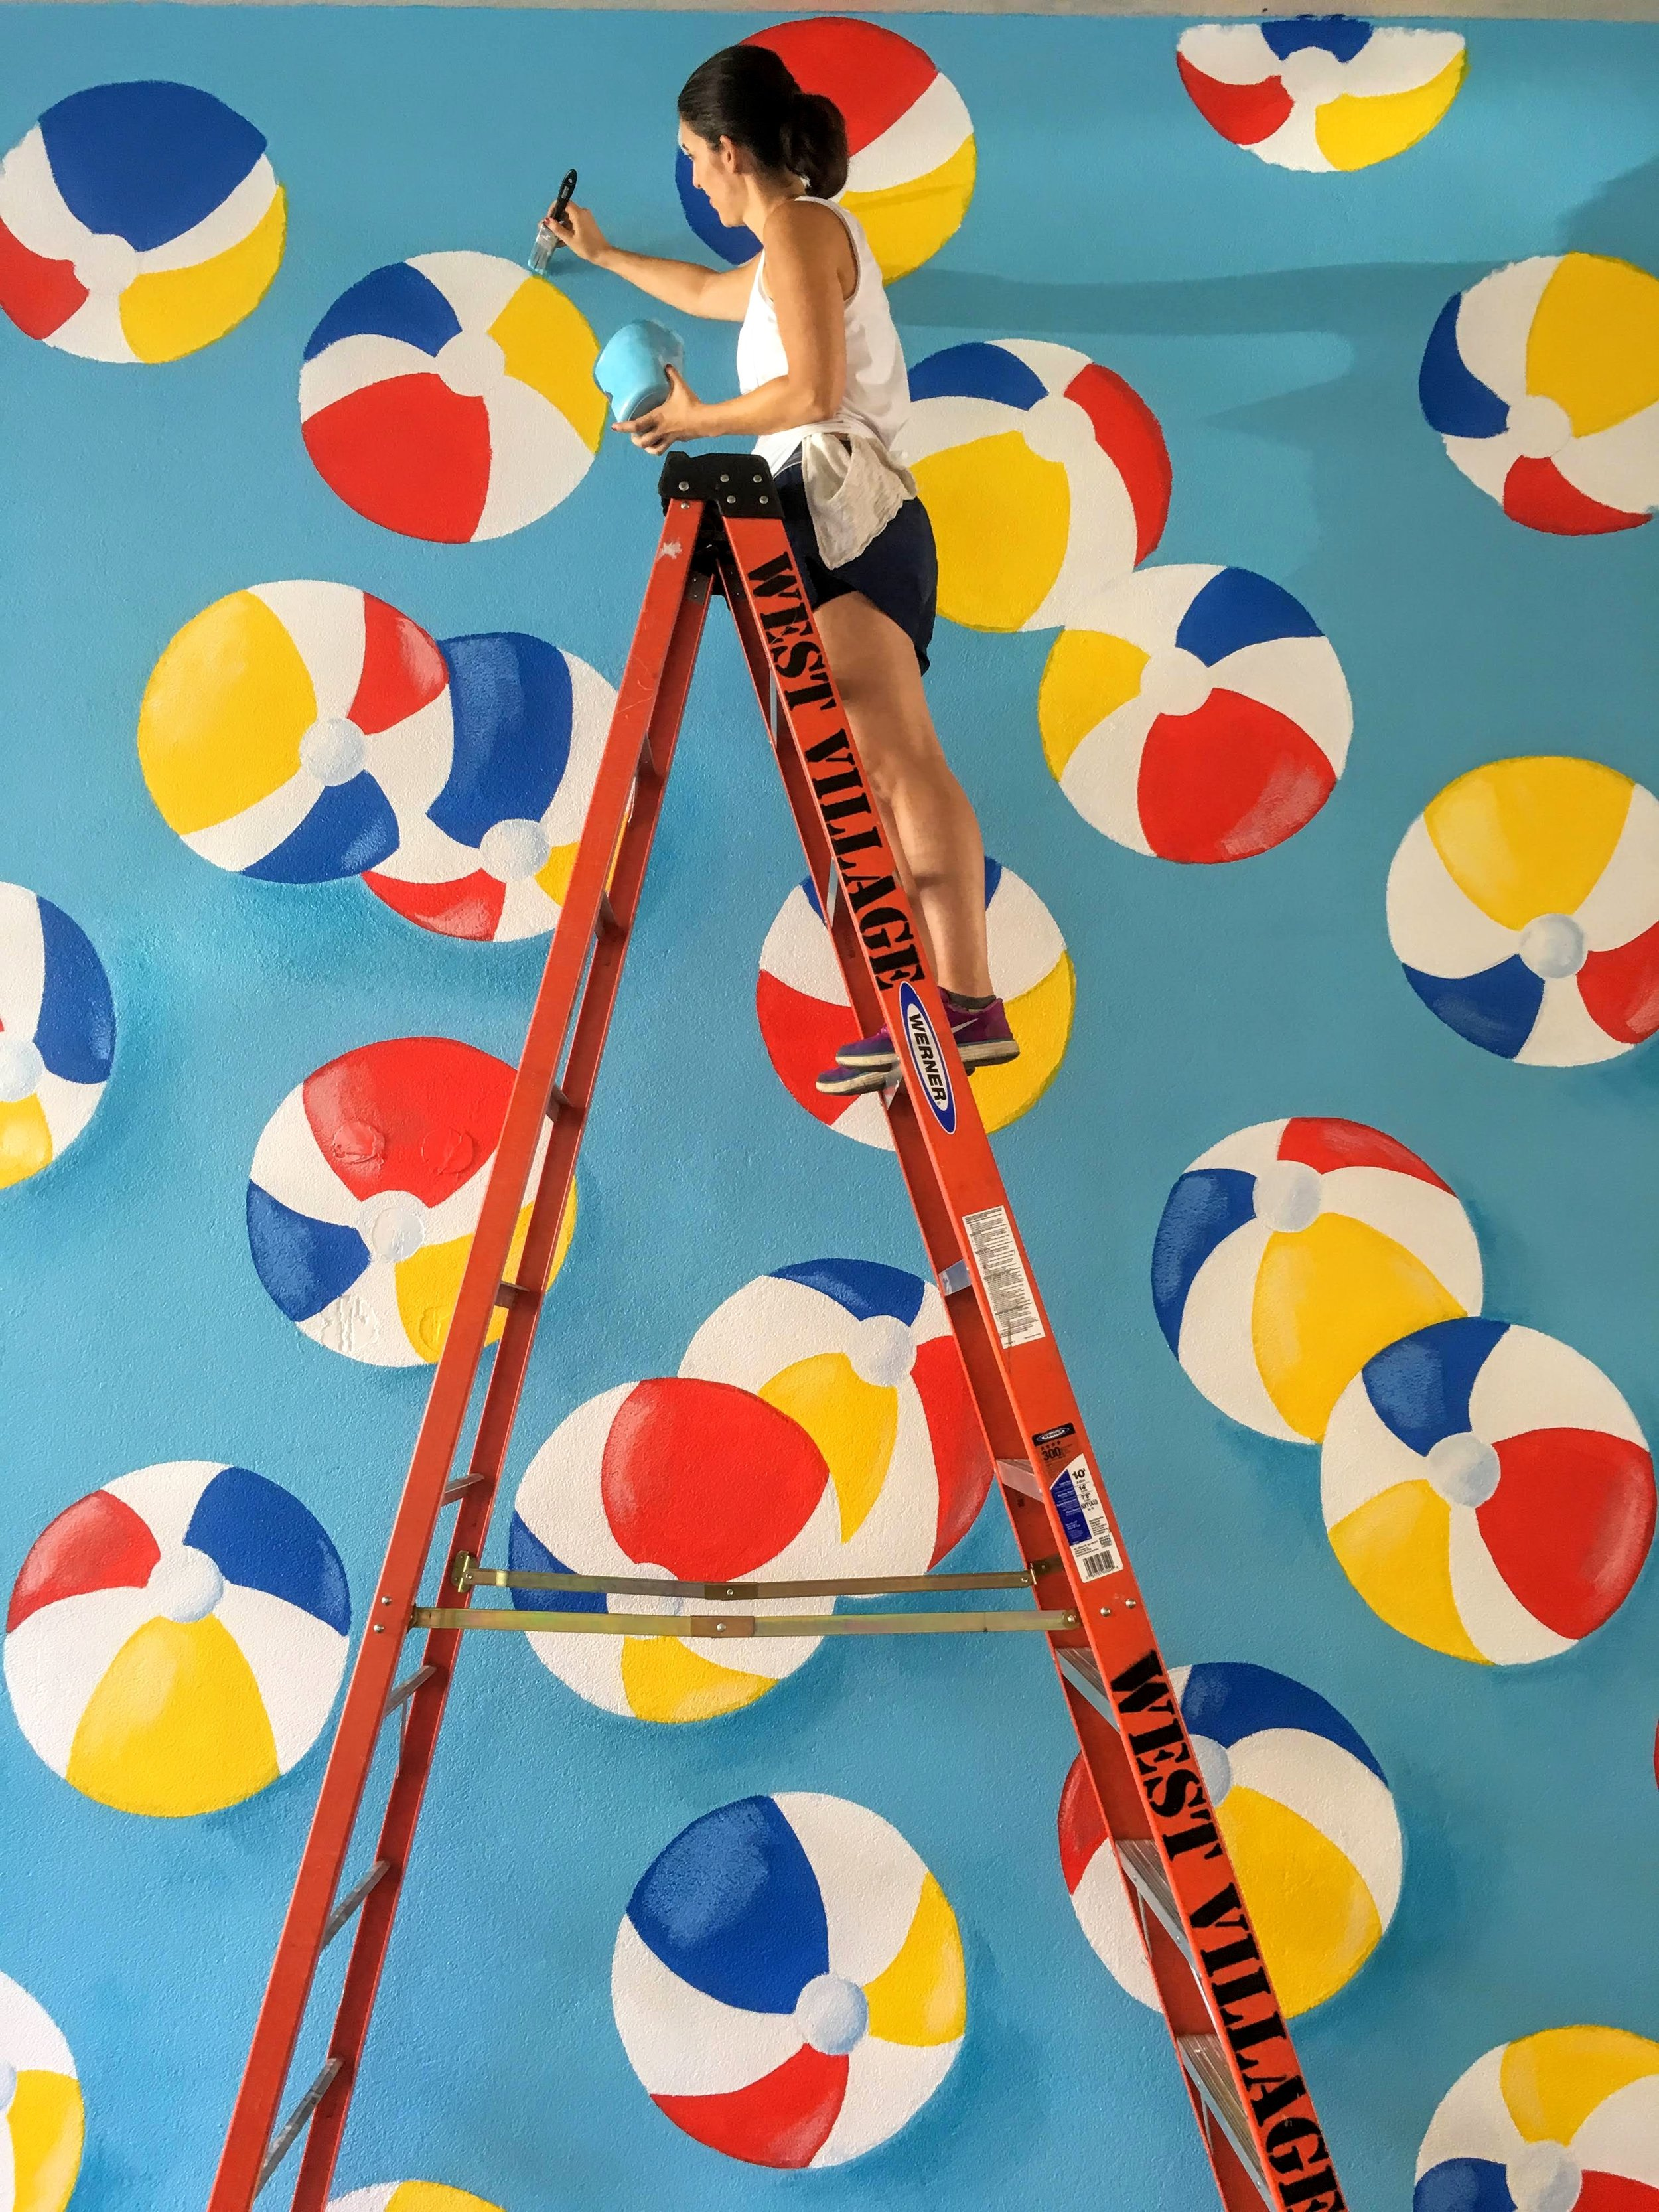 Mione_Beach Balls West Village Mural.JPG